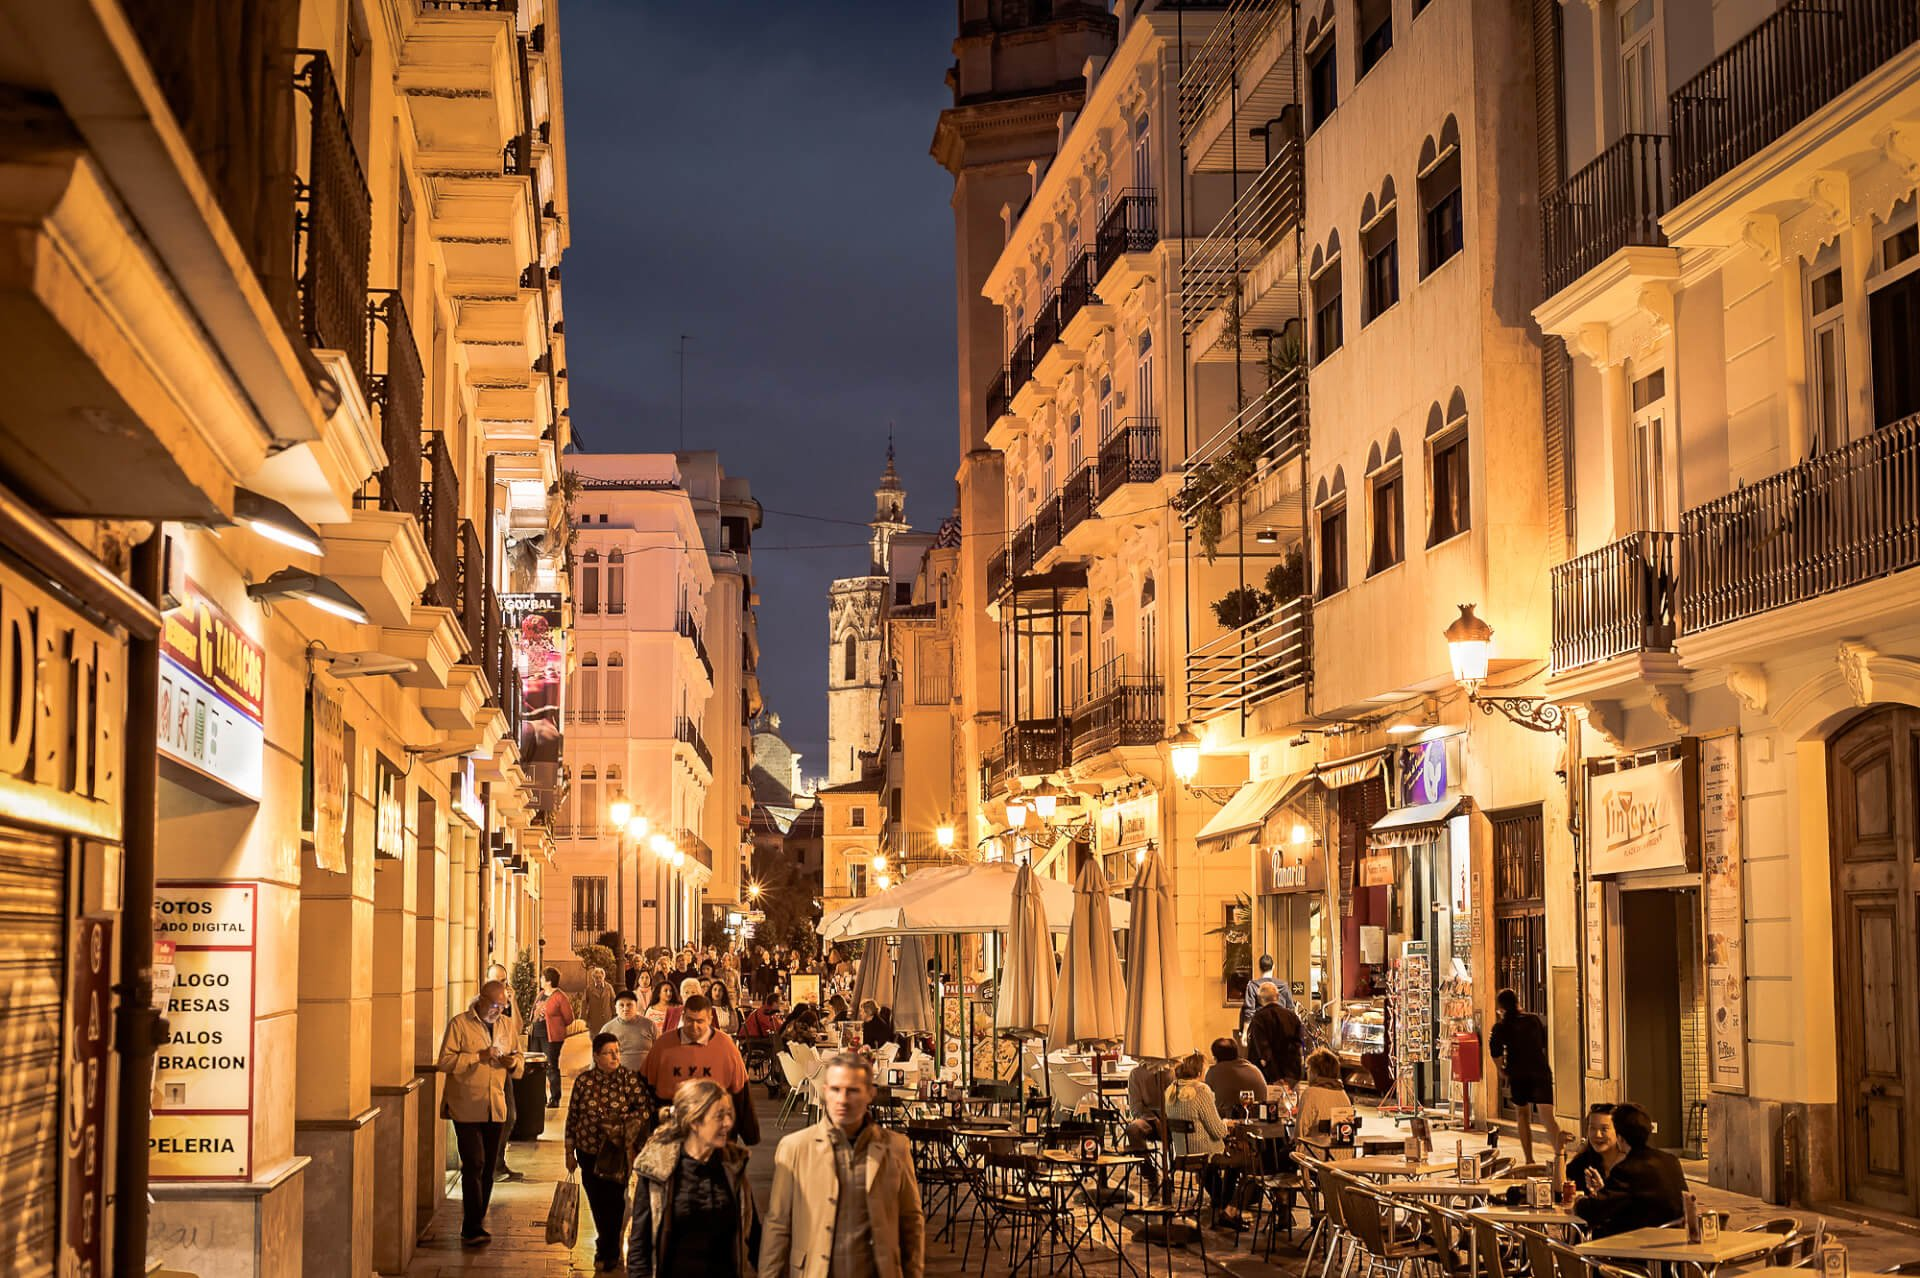 VALENCIA, SPAIN - NOVEMBER 06, 2106: People walking on Old Town street of Valencia. Valencia is the 3rd largest city in Spain.